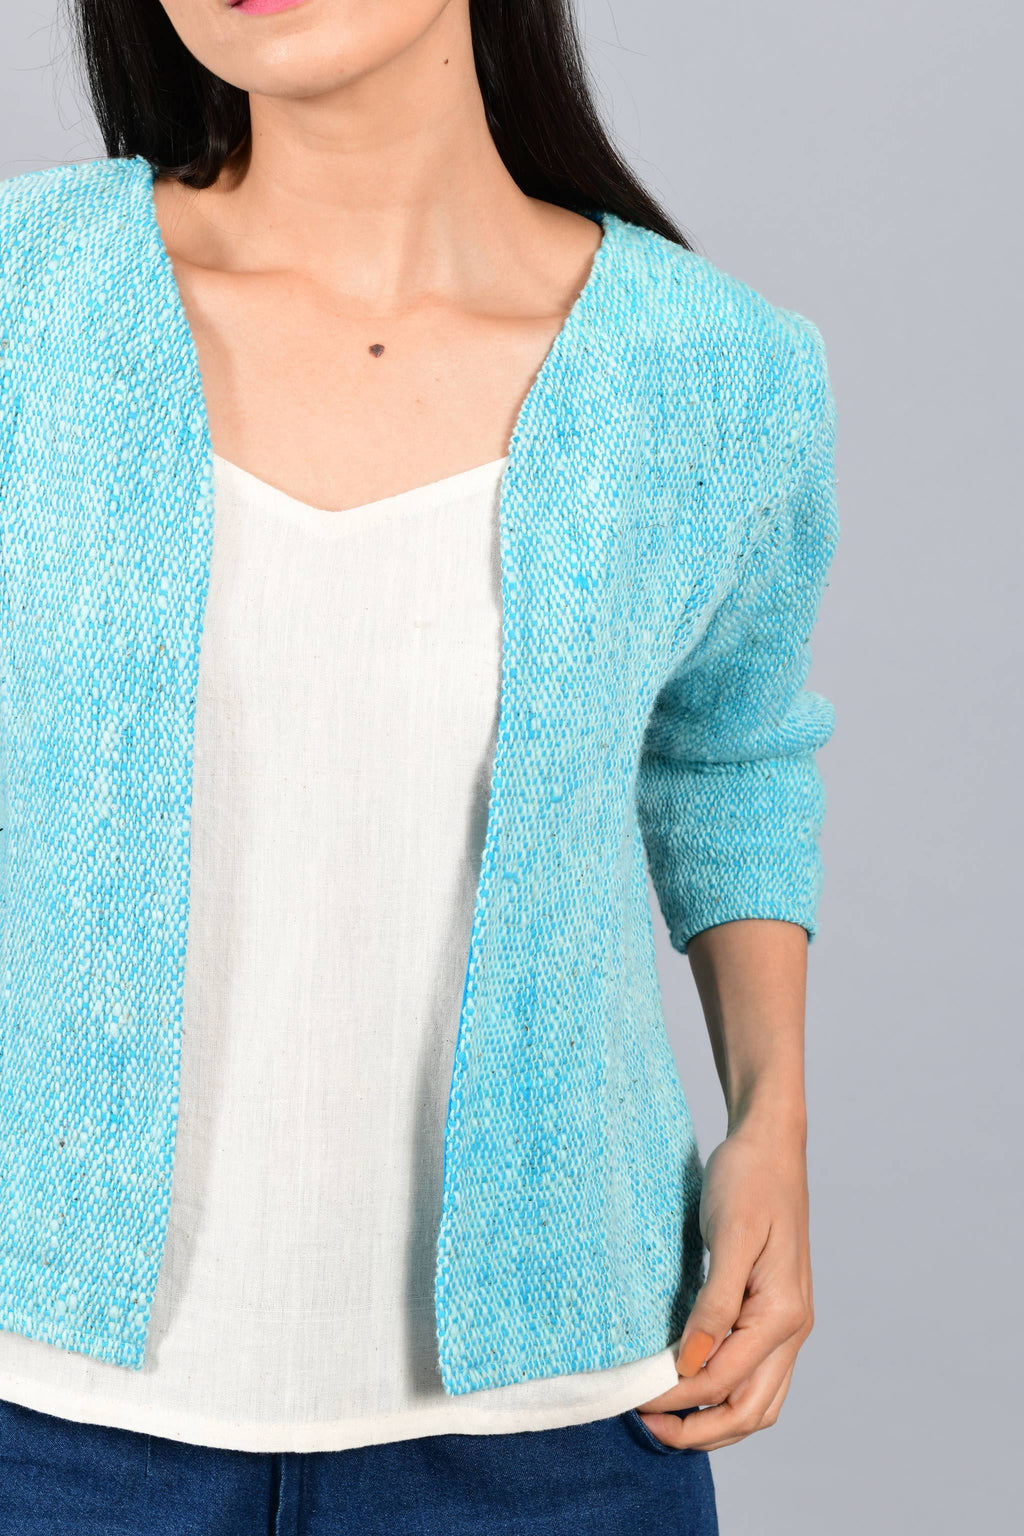 Front close up of an Indian Womenswear female model wearing aqua blue and Gandhi Charkha spun and handwoven khadi Jacket over an off-white spaghetti and indigo palazzos by Cotton Rack.